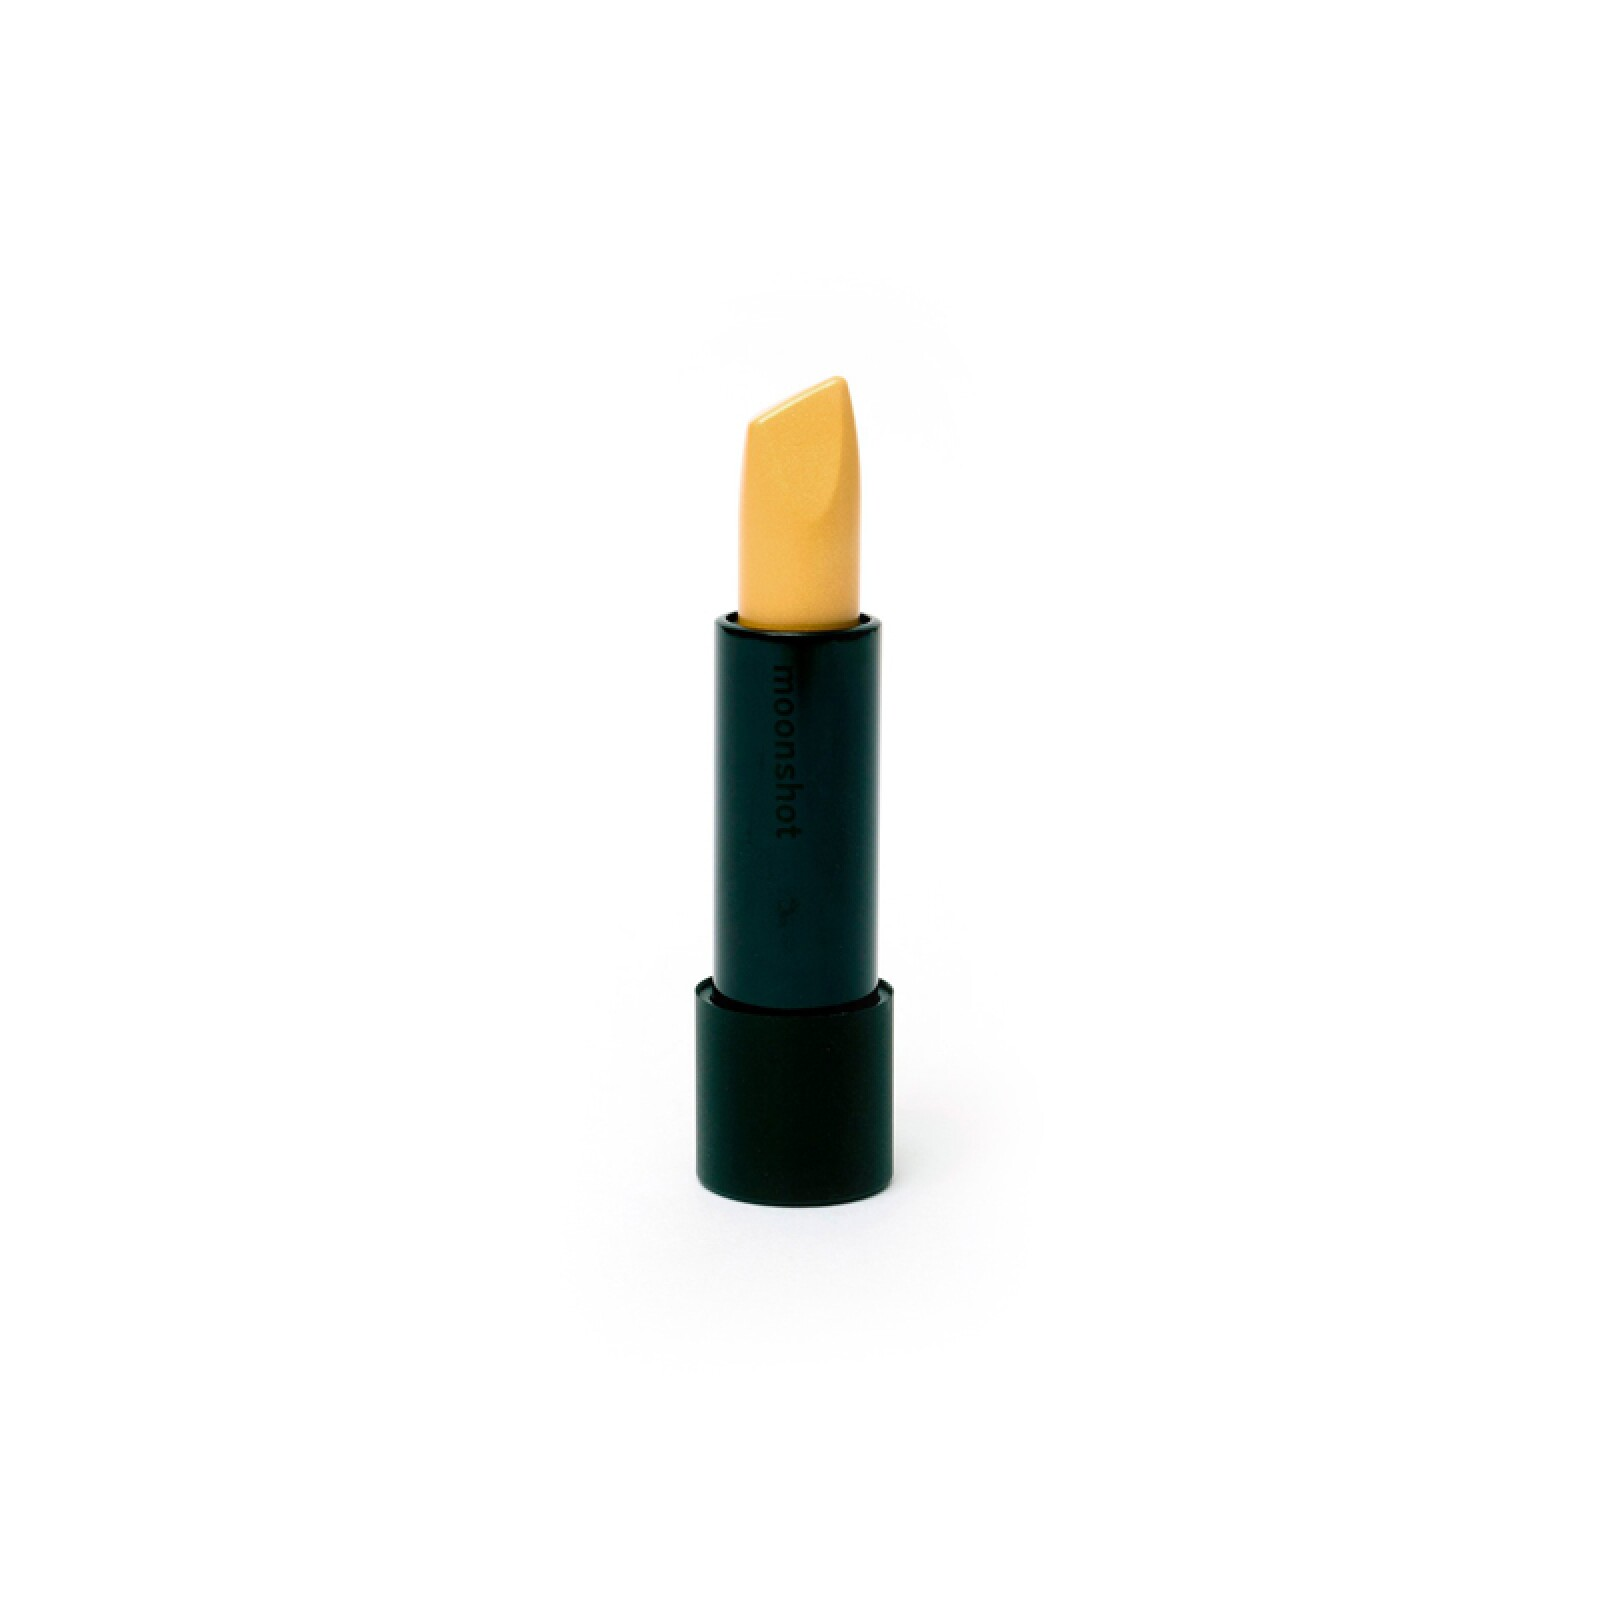 lipstick-alternativo-labial-maquillaje-colores-tonos-moonshot